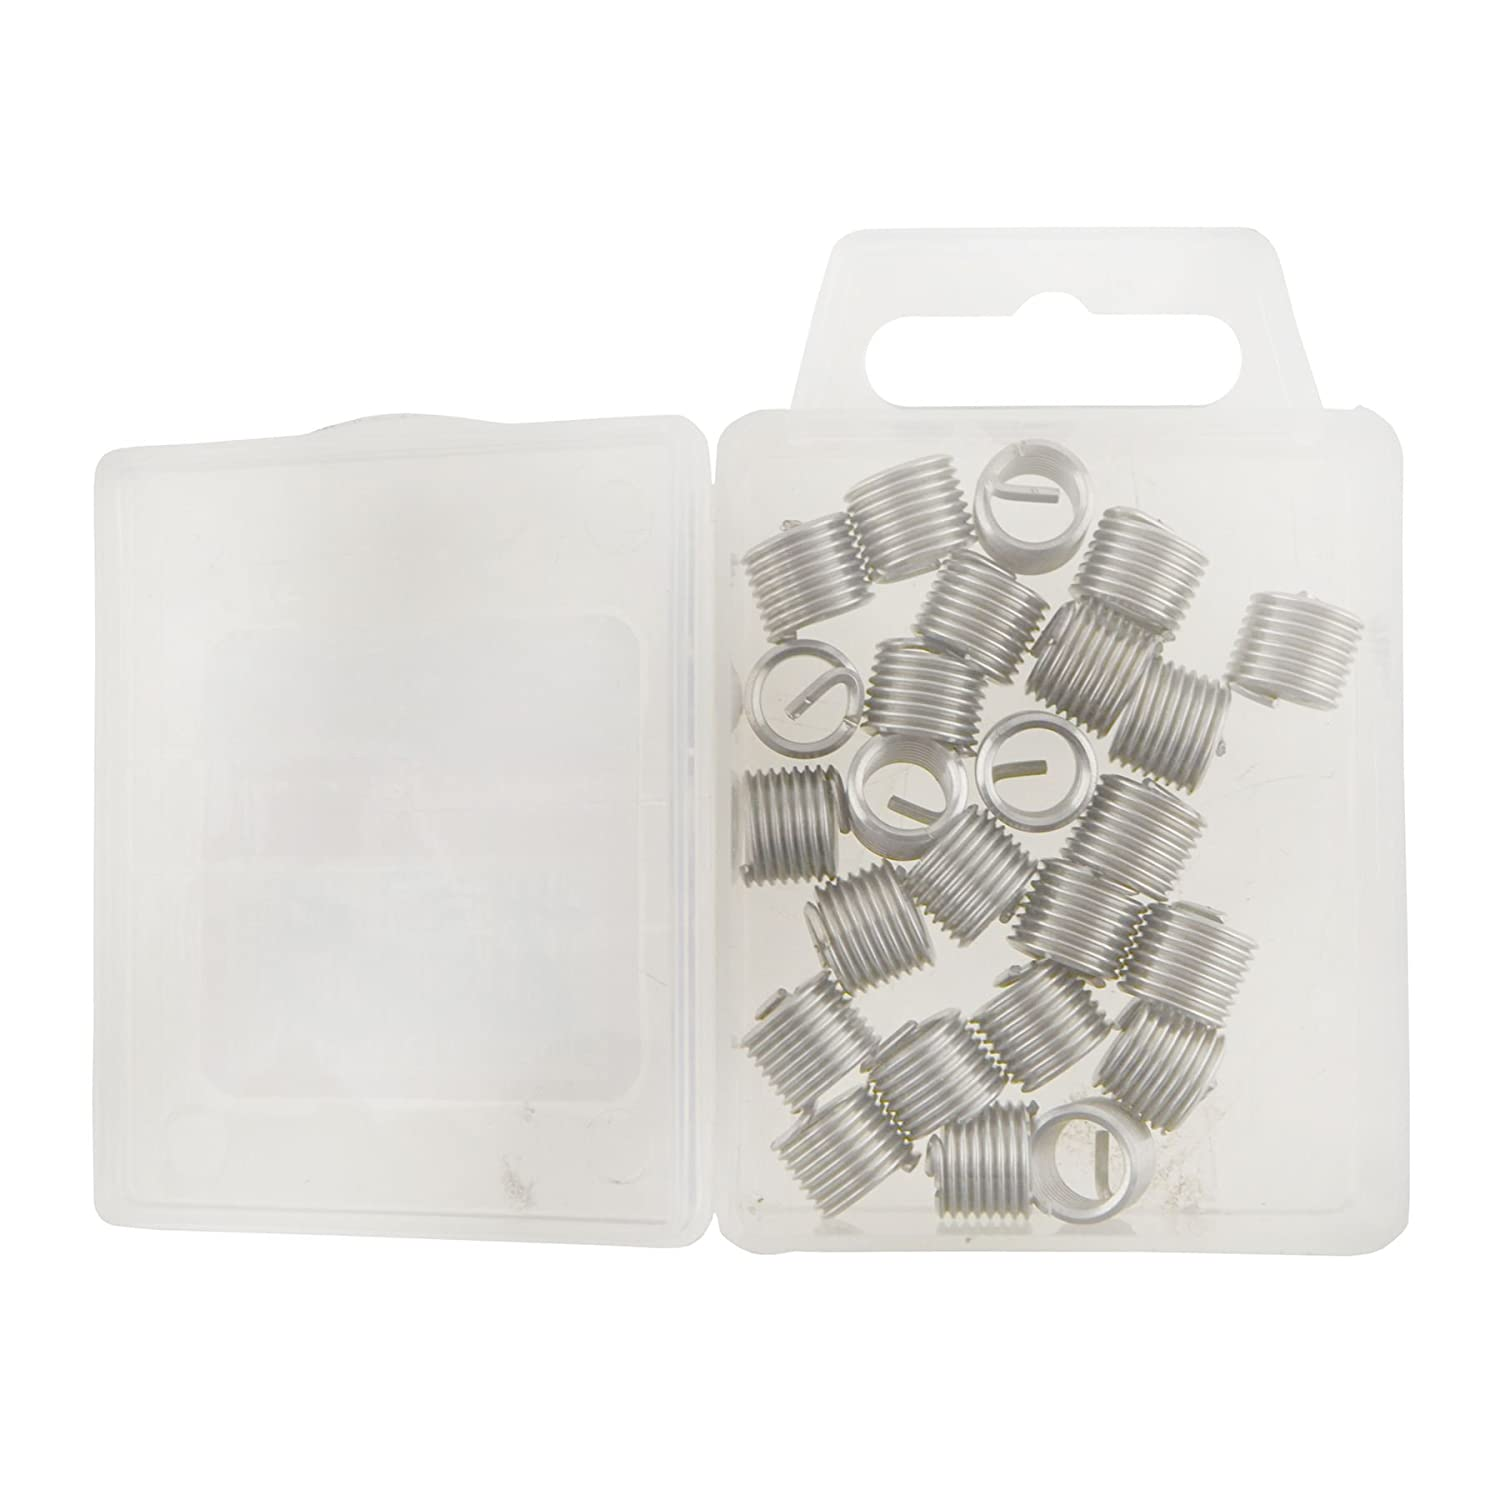 AB Tools-Neilsen Helicoil Type Thread Repair Inserts M8 x 1.25mm 25pc Wire Thread Inserts